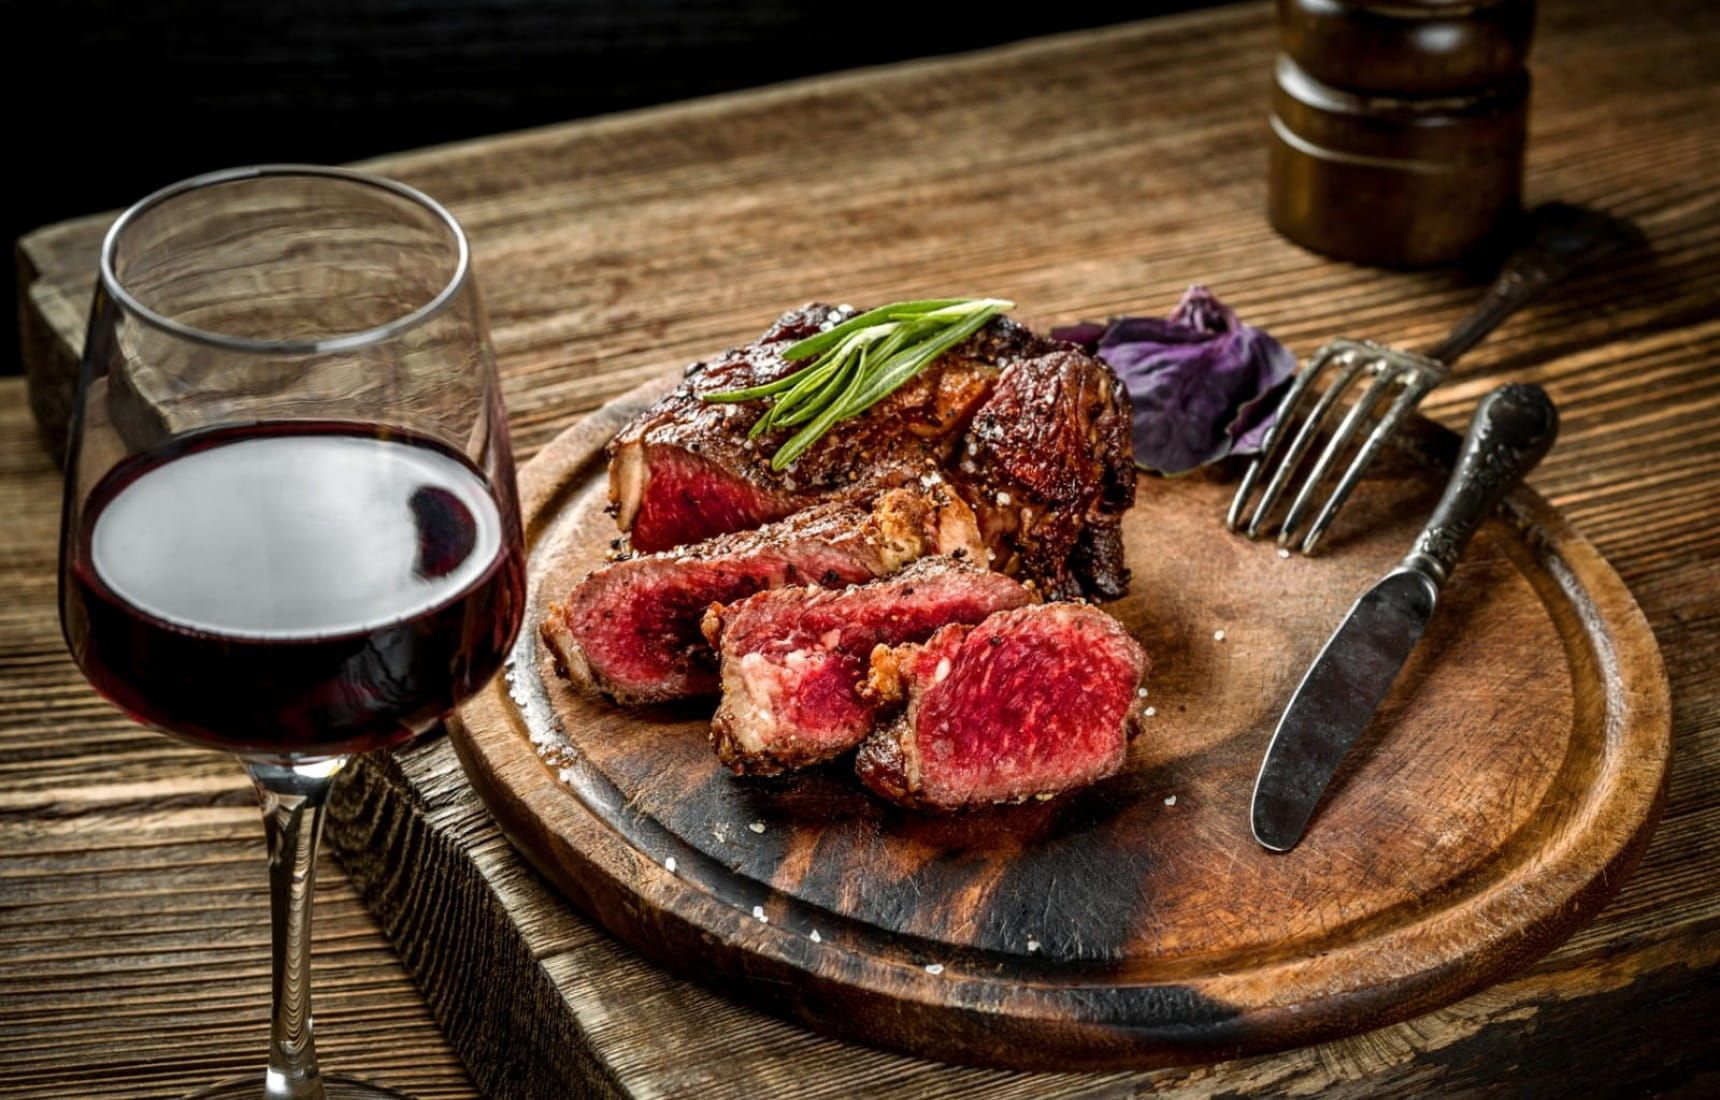 Top Pairings Six Of The Best Pairings For Cabernet Sauvignon Food Pairings Wine Recipes Wine Food Pairing